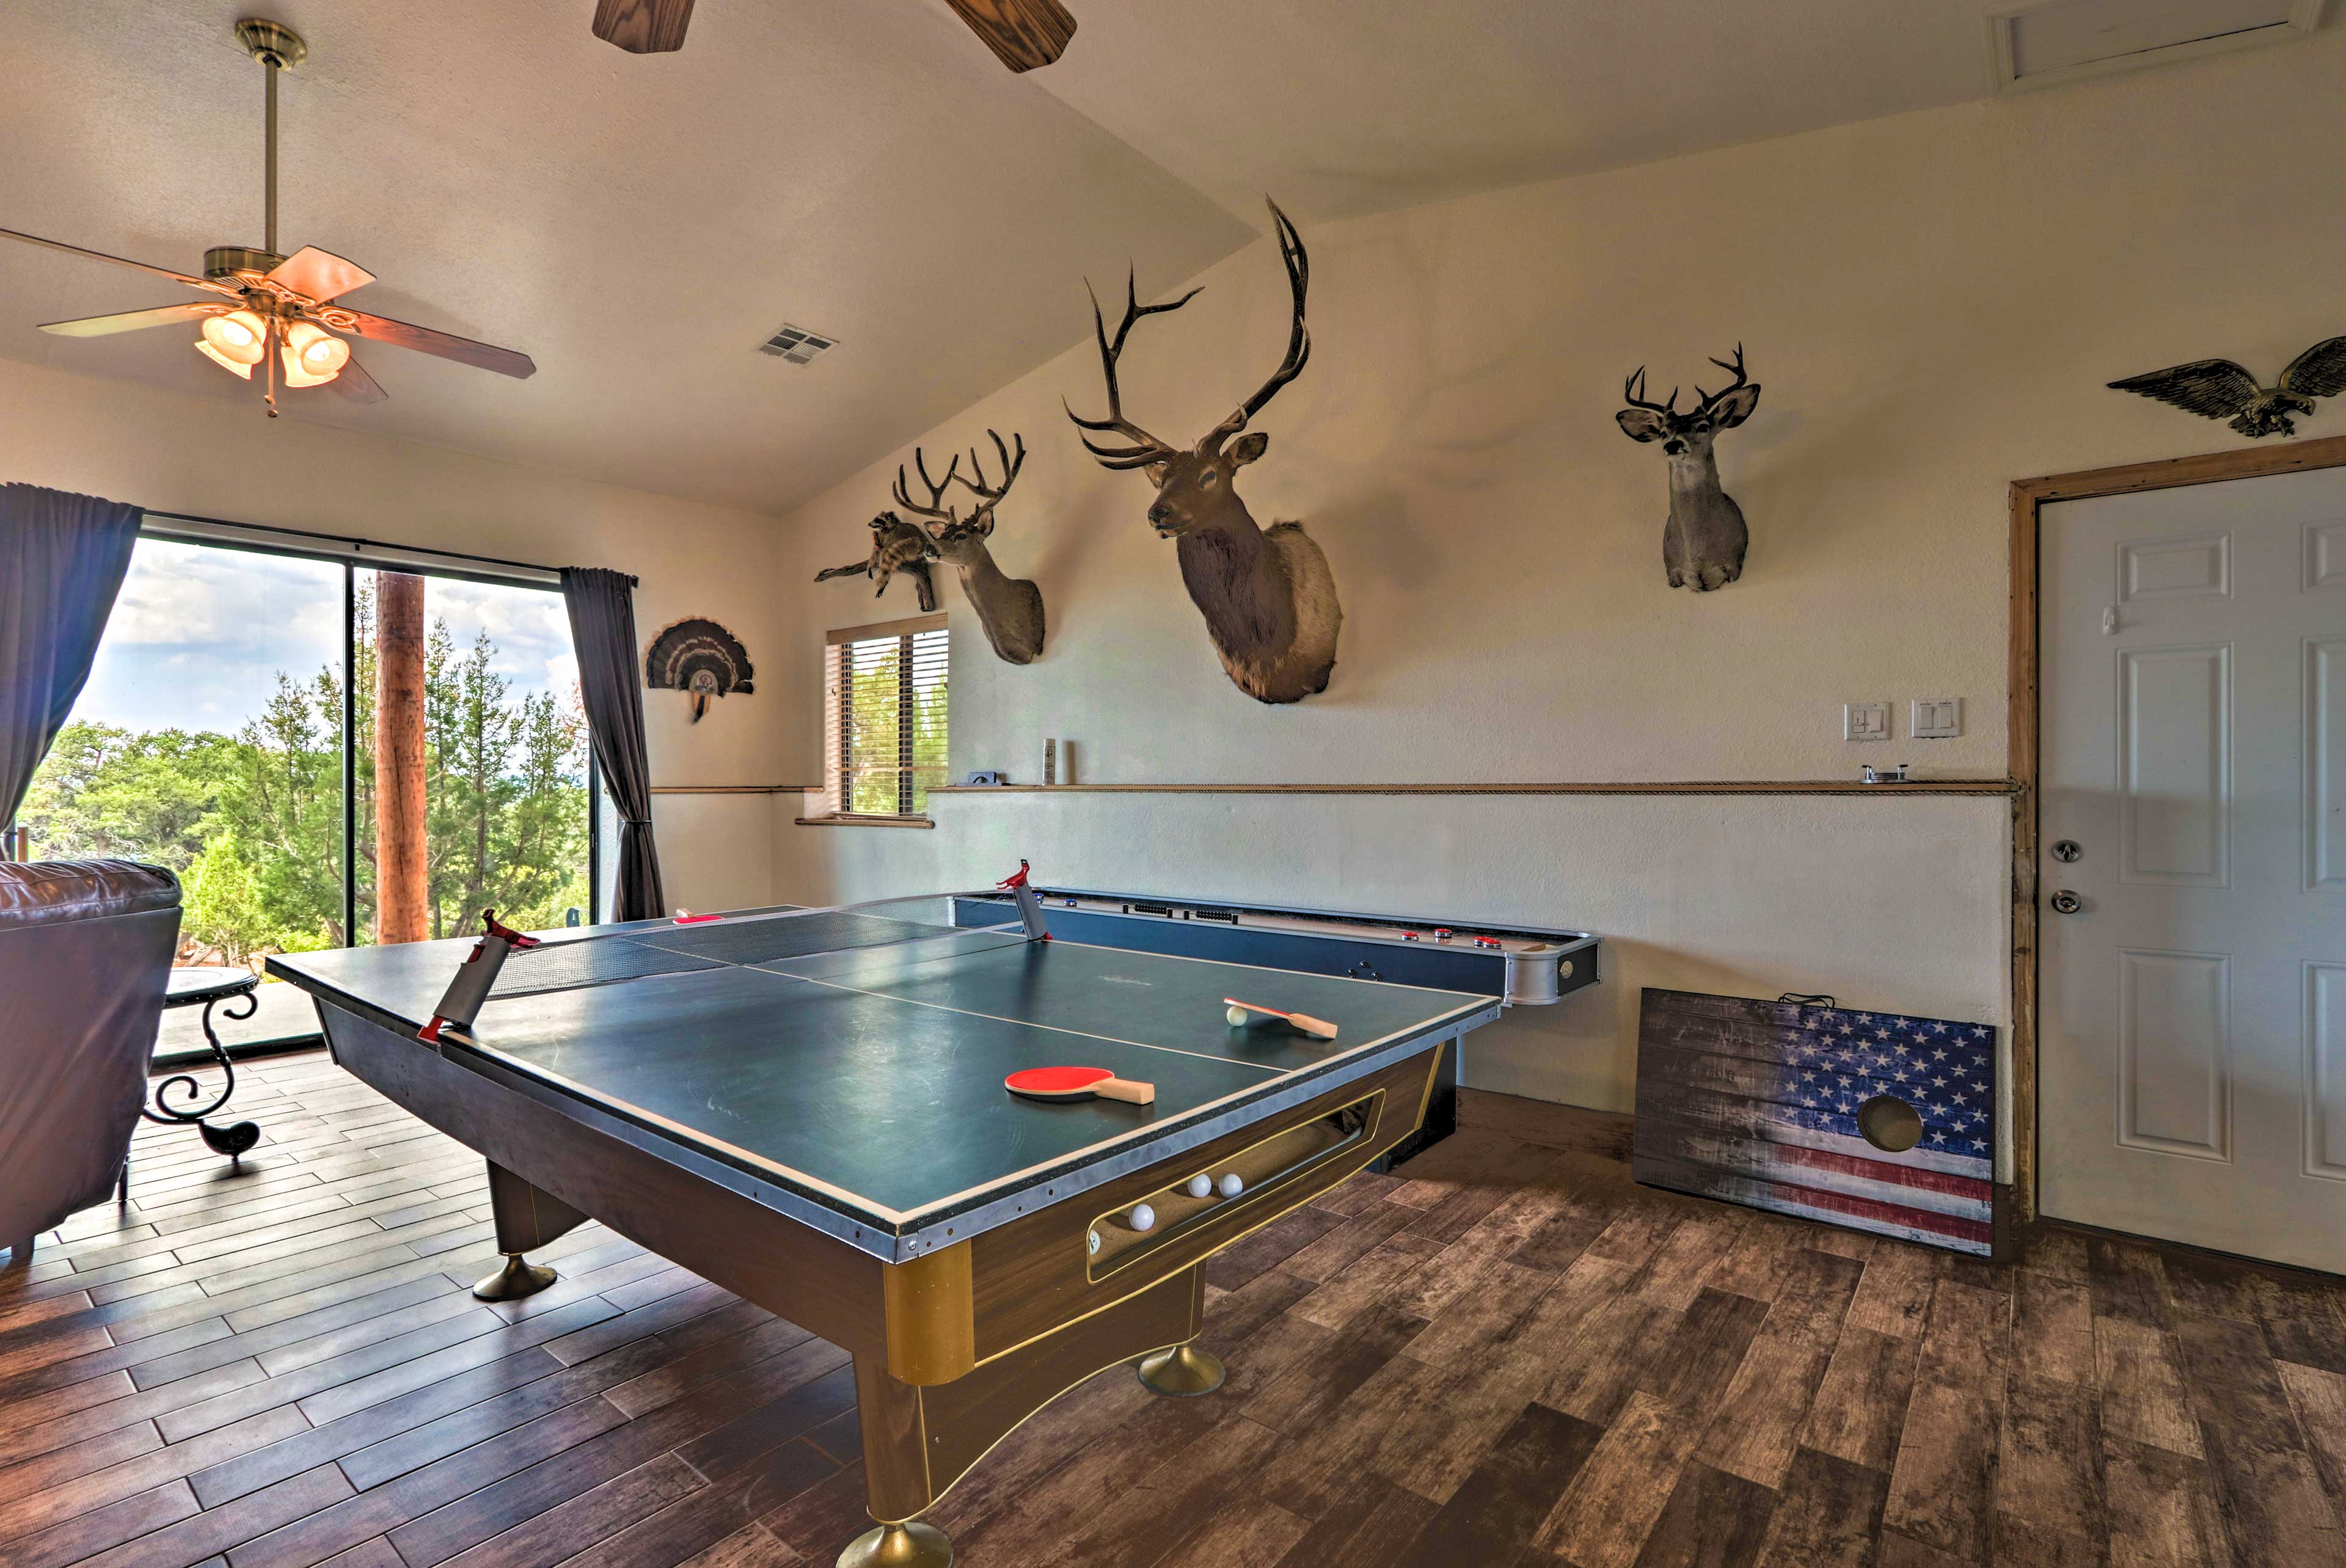 Who's up for a game of shuffleboard?